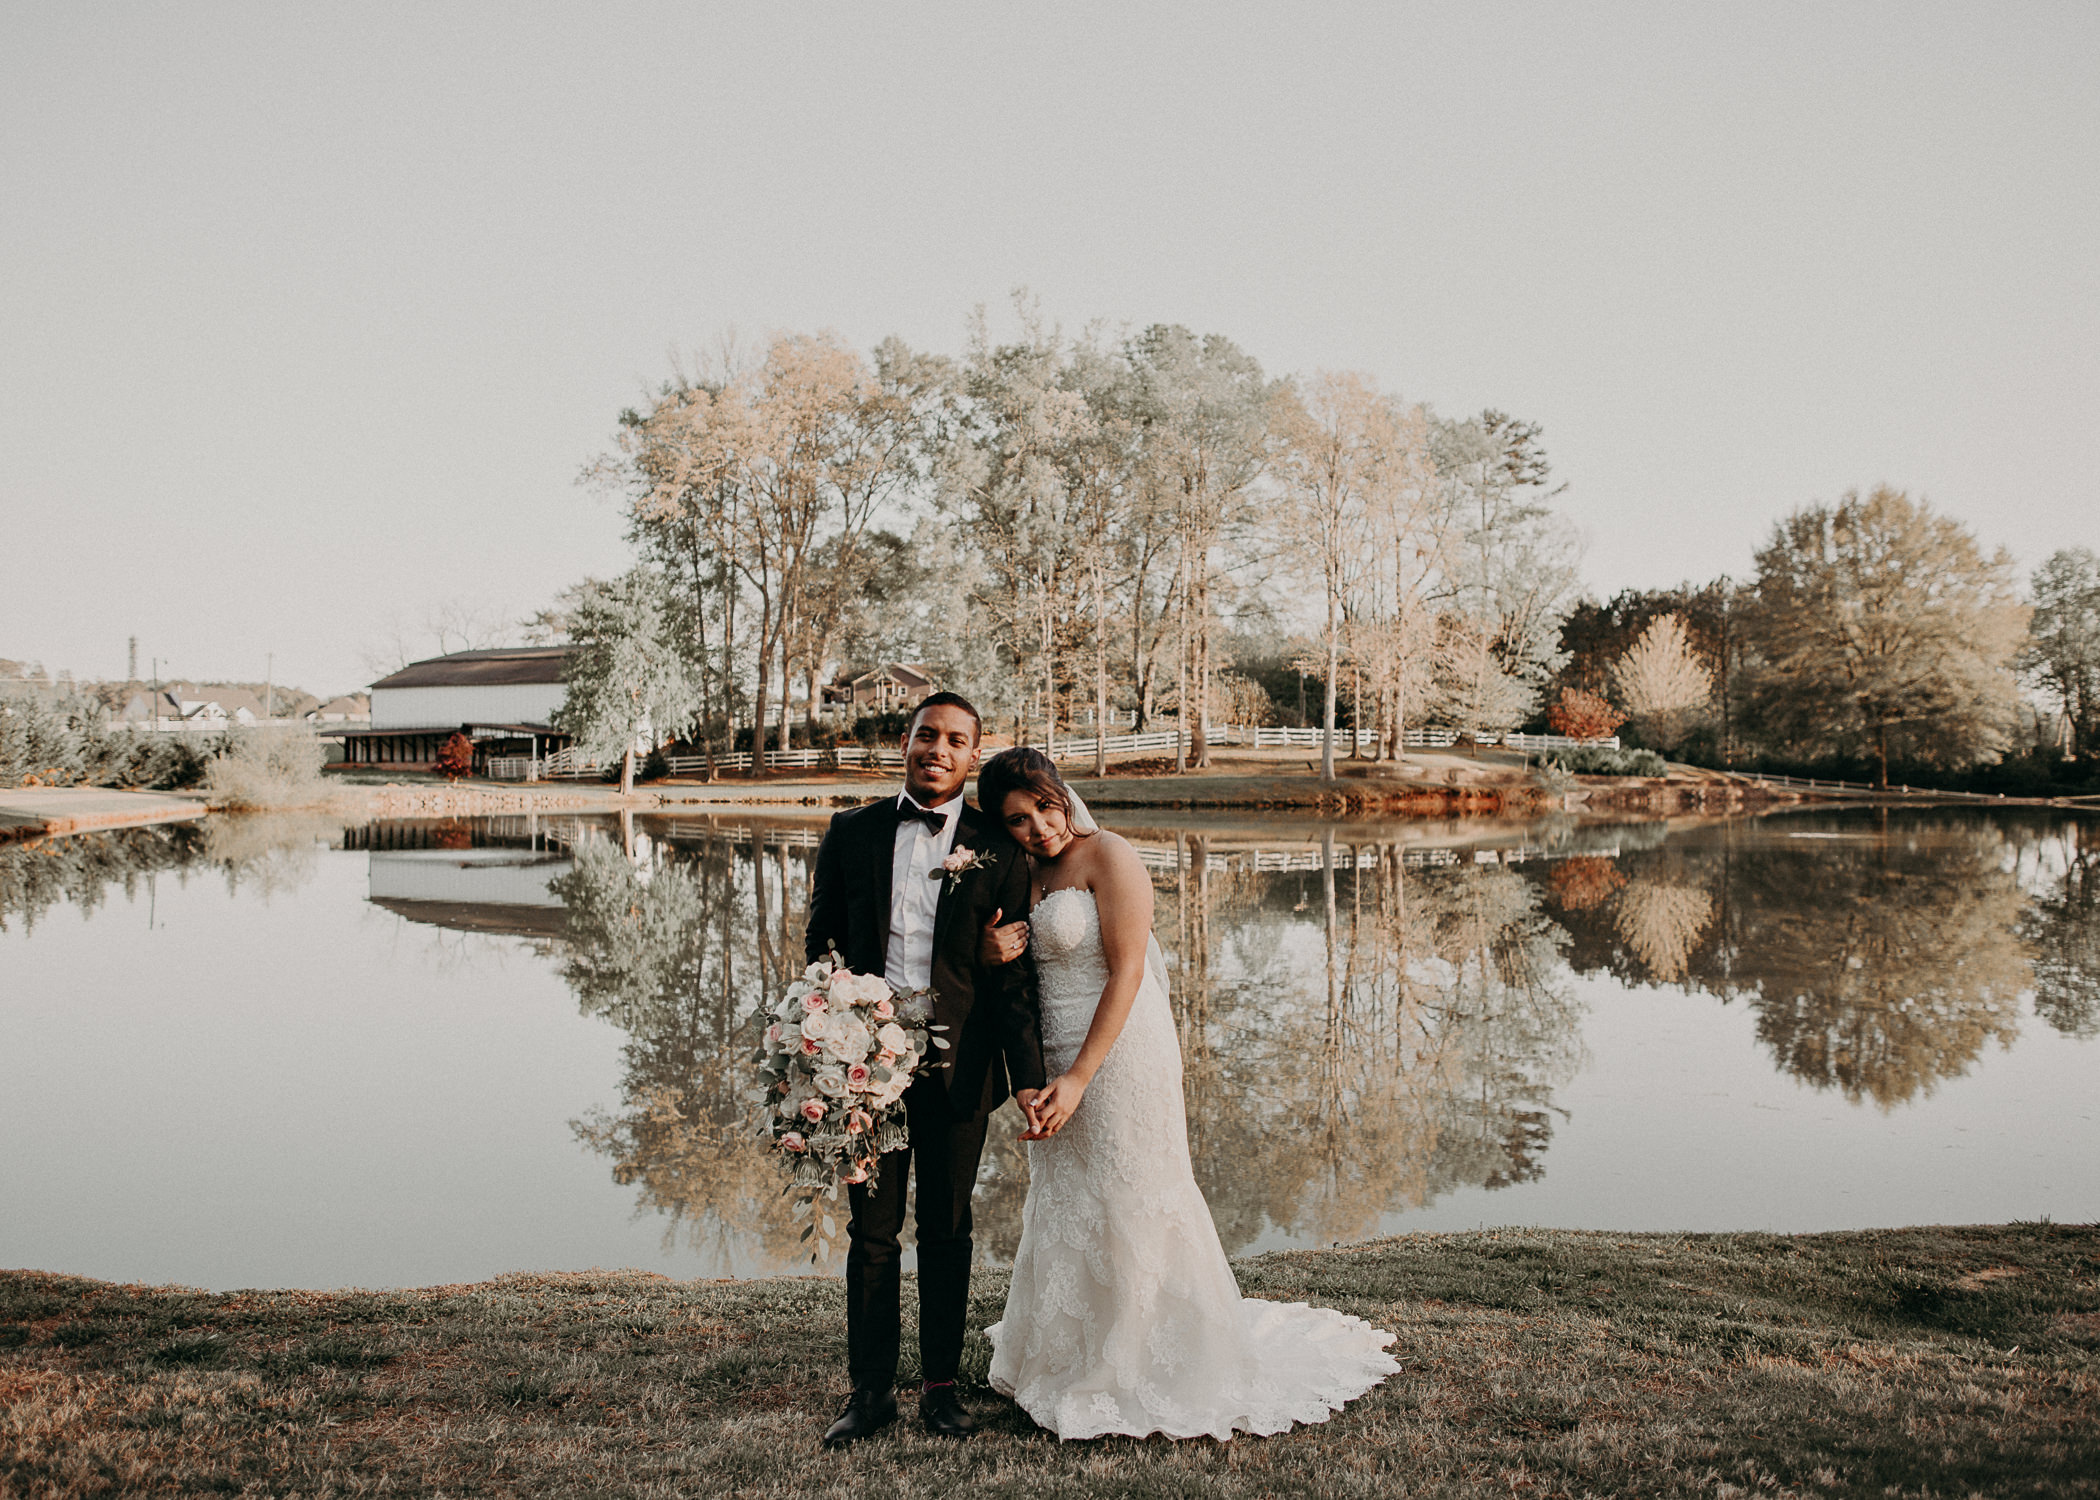 50  - Little River Farms - first look - Atlanta - Wedding Venue - Atlanta Wedding Photographer - Georgia weddings details wedding dress shoes gather groom bridal party .jpg